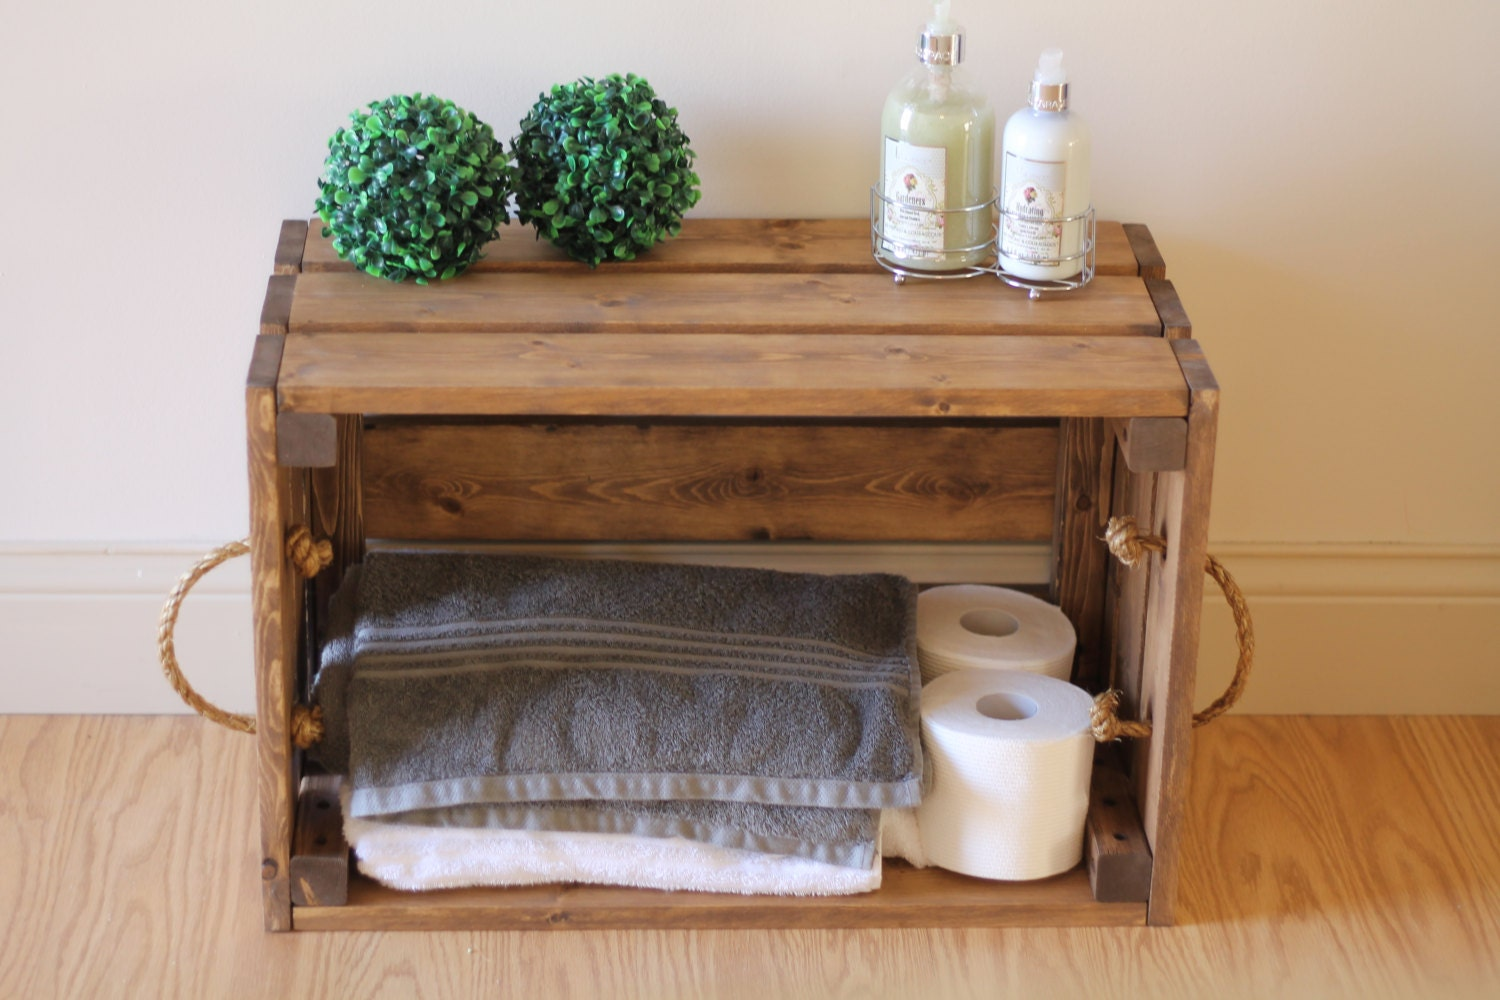 rustic wood bathroom accessories.  zoom Rustic Wooden Crate Bathroom Storage Shelf